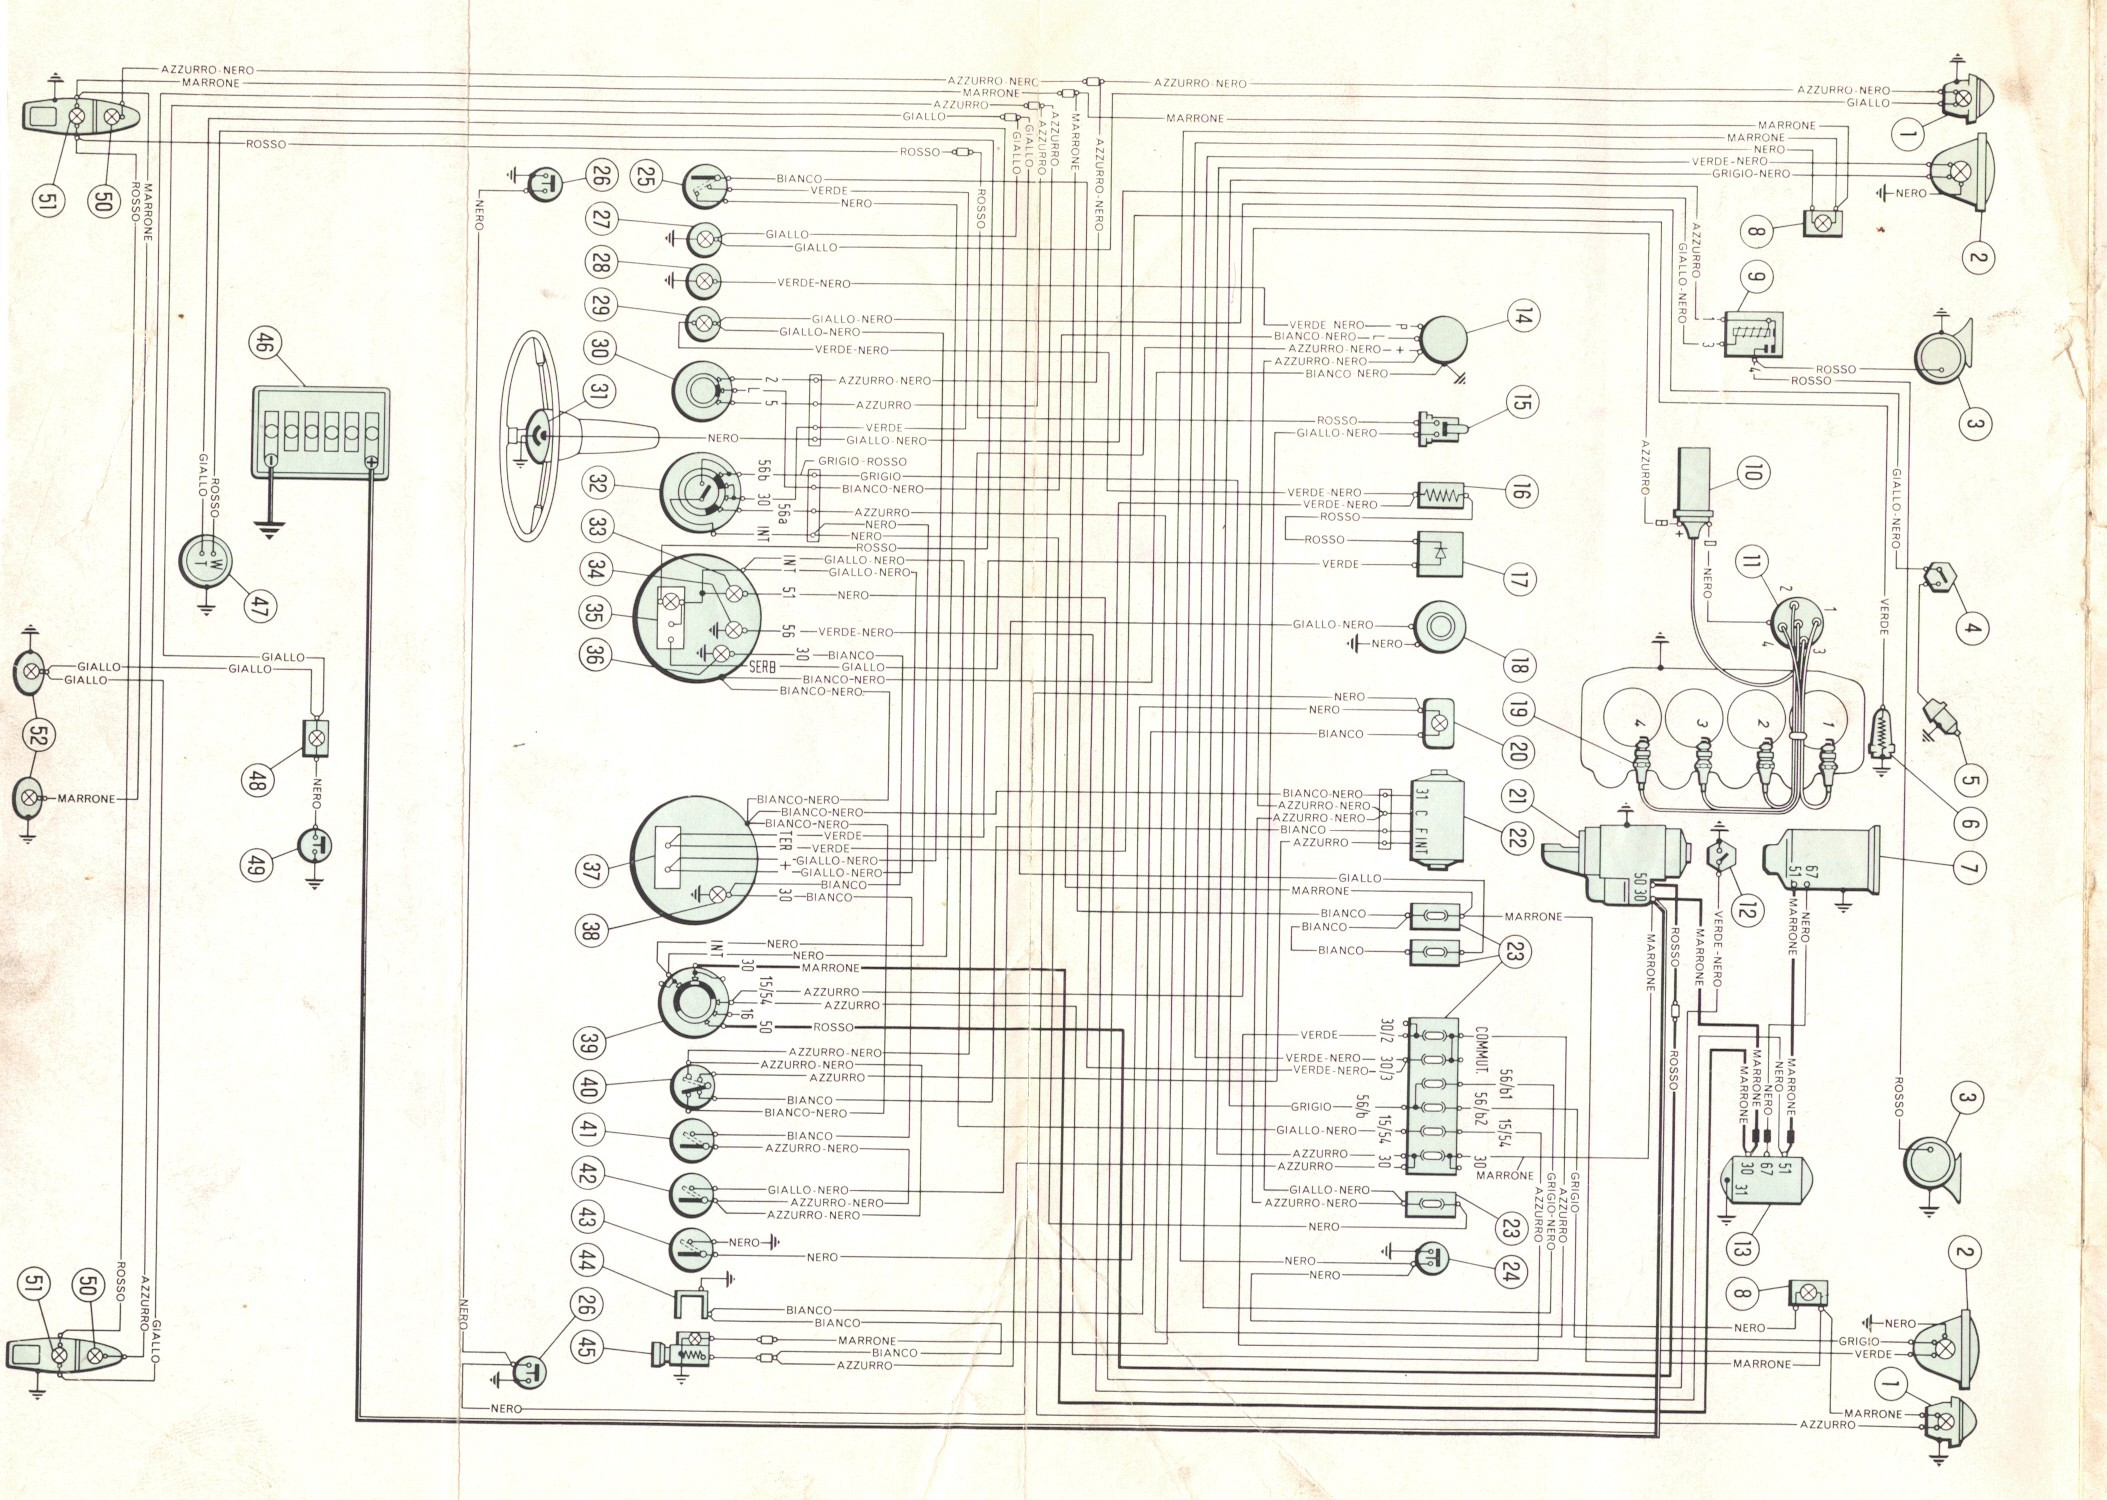 1973 Fiat 128 Wiring Diagram In Color Trusted Diagrams Volkswagen For Example Electrical U2022 Rh Huntervalleyhotels Co Dodge Challenger